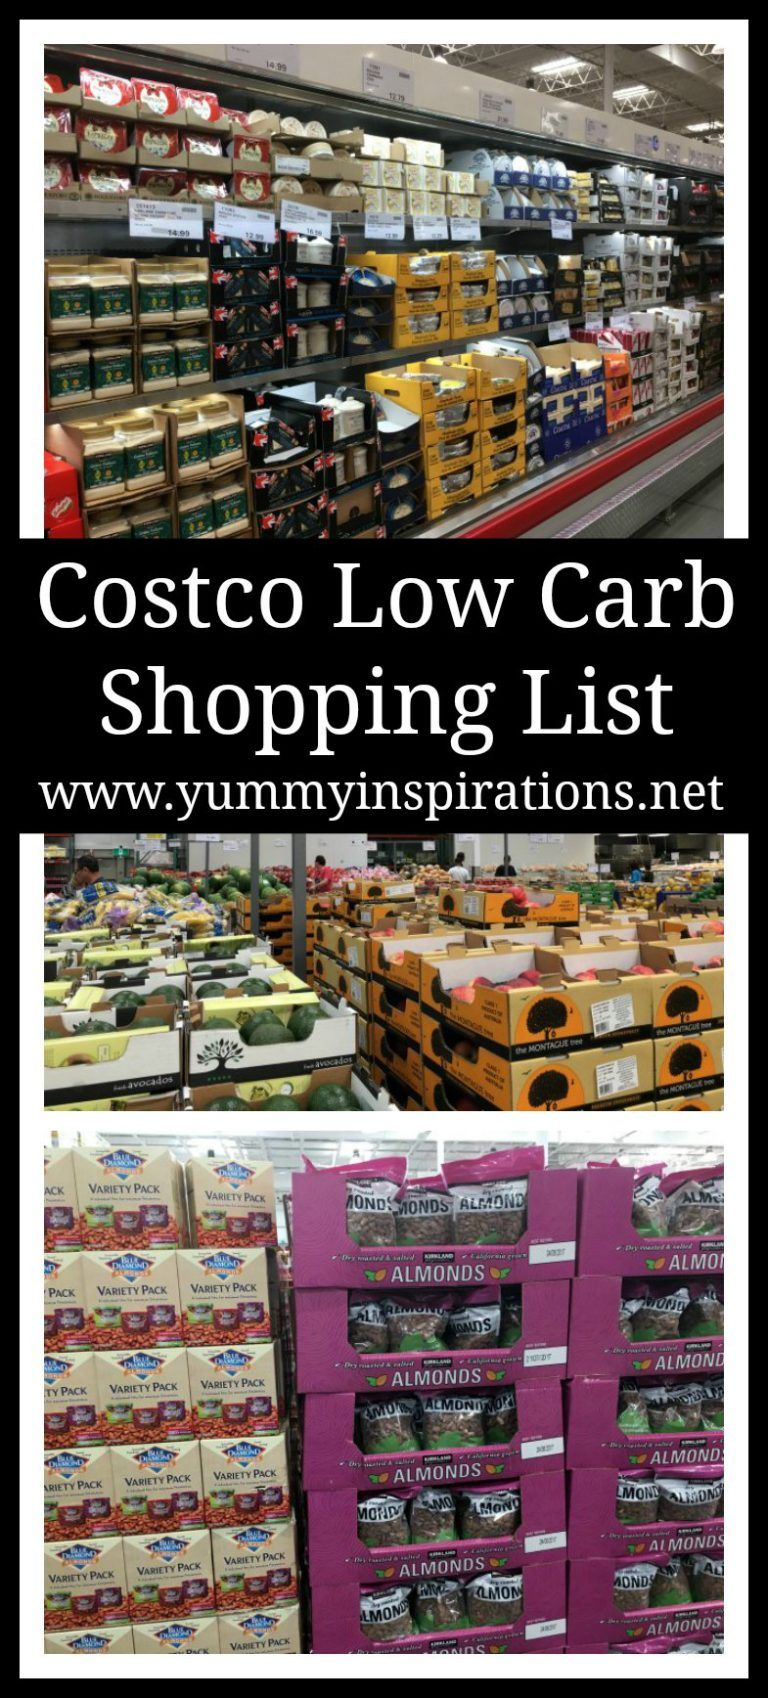 Costco Low Carb Shopping List Low carb shopping list